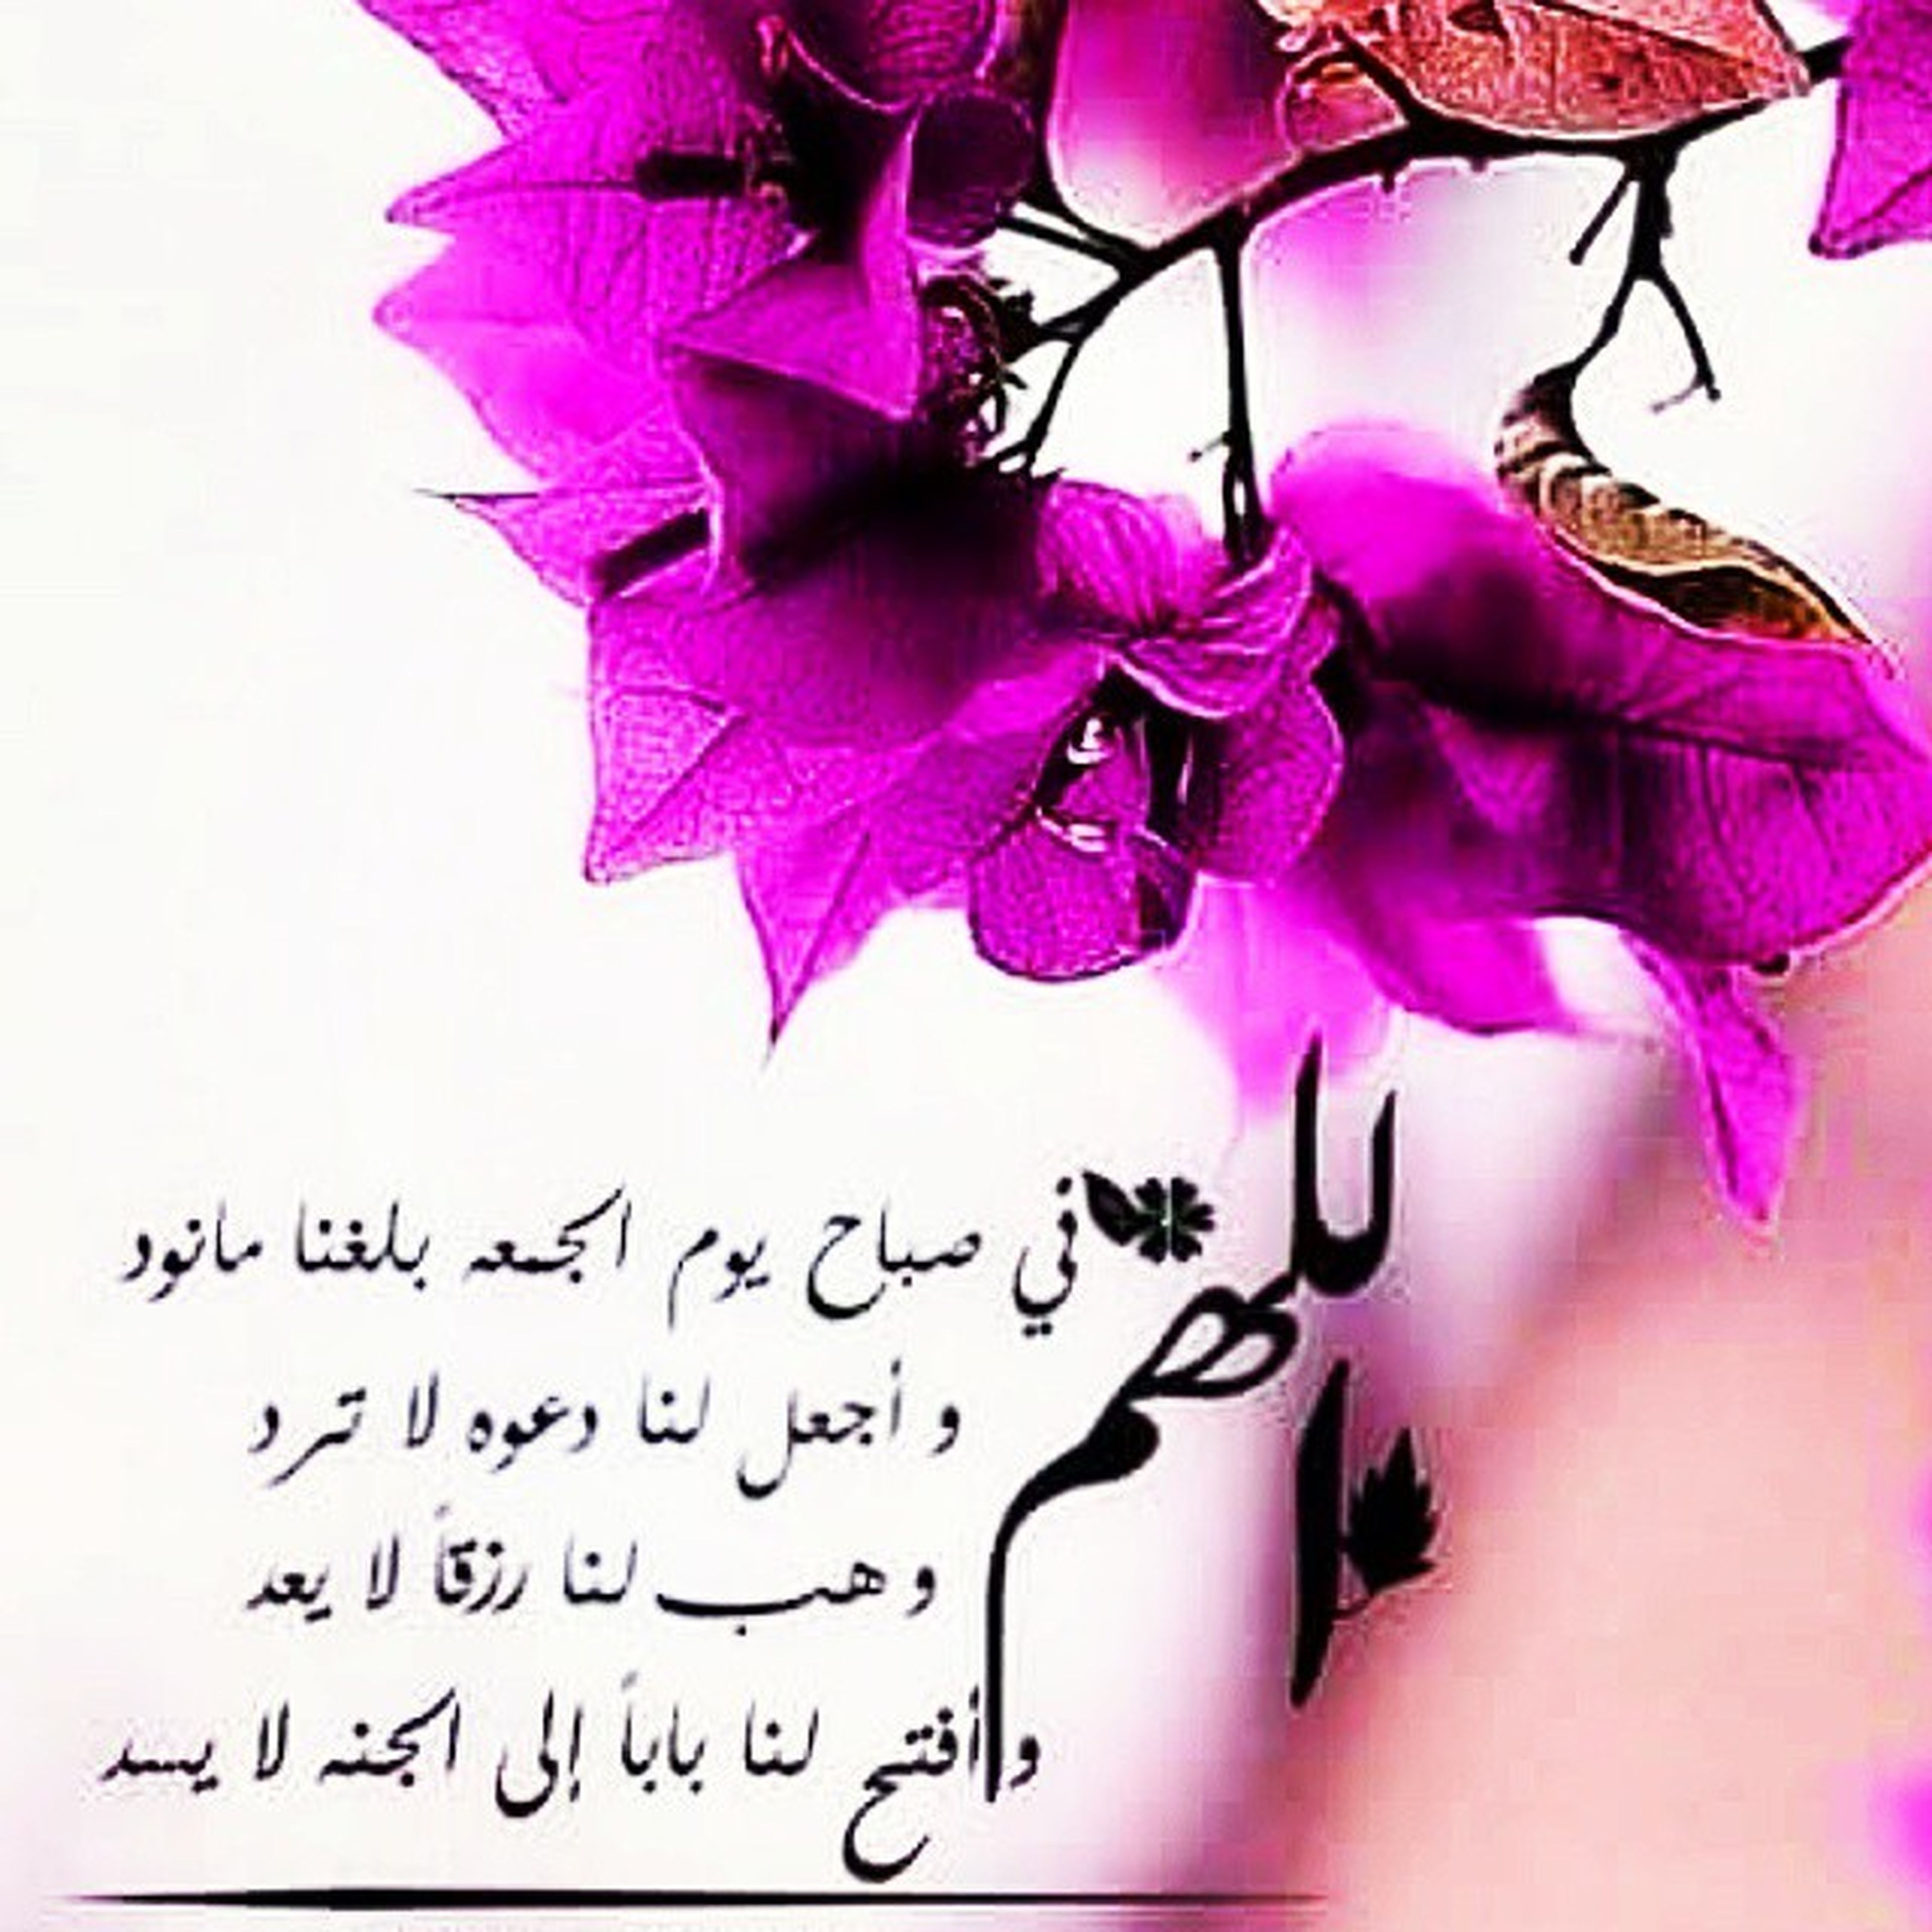 flower, petal, purple, close-up, pink color, indoors, fragility, multi colored, creativity, art and craft, freshness, text, paper, art, western script, studio shot, flower head, white background, decoration, beauty in nature